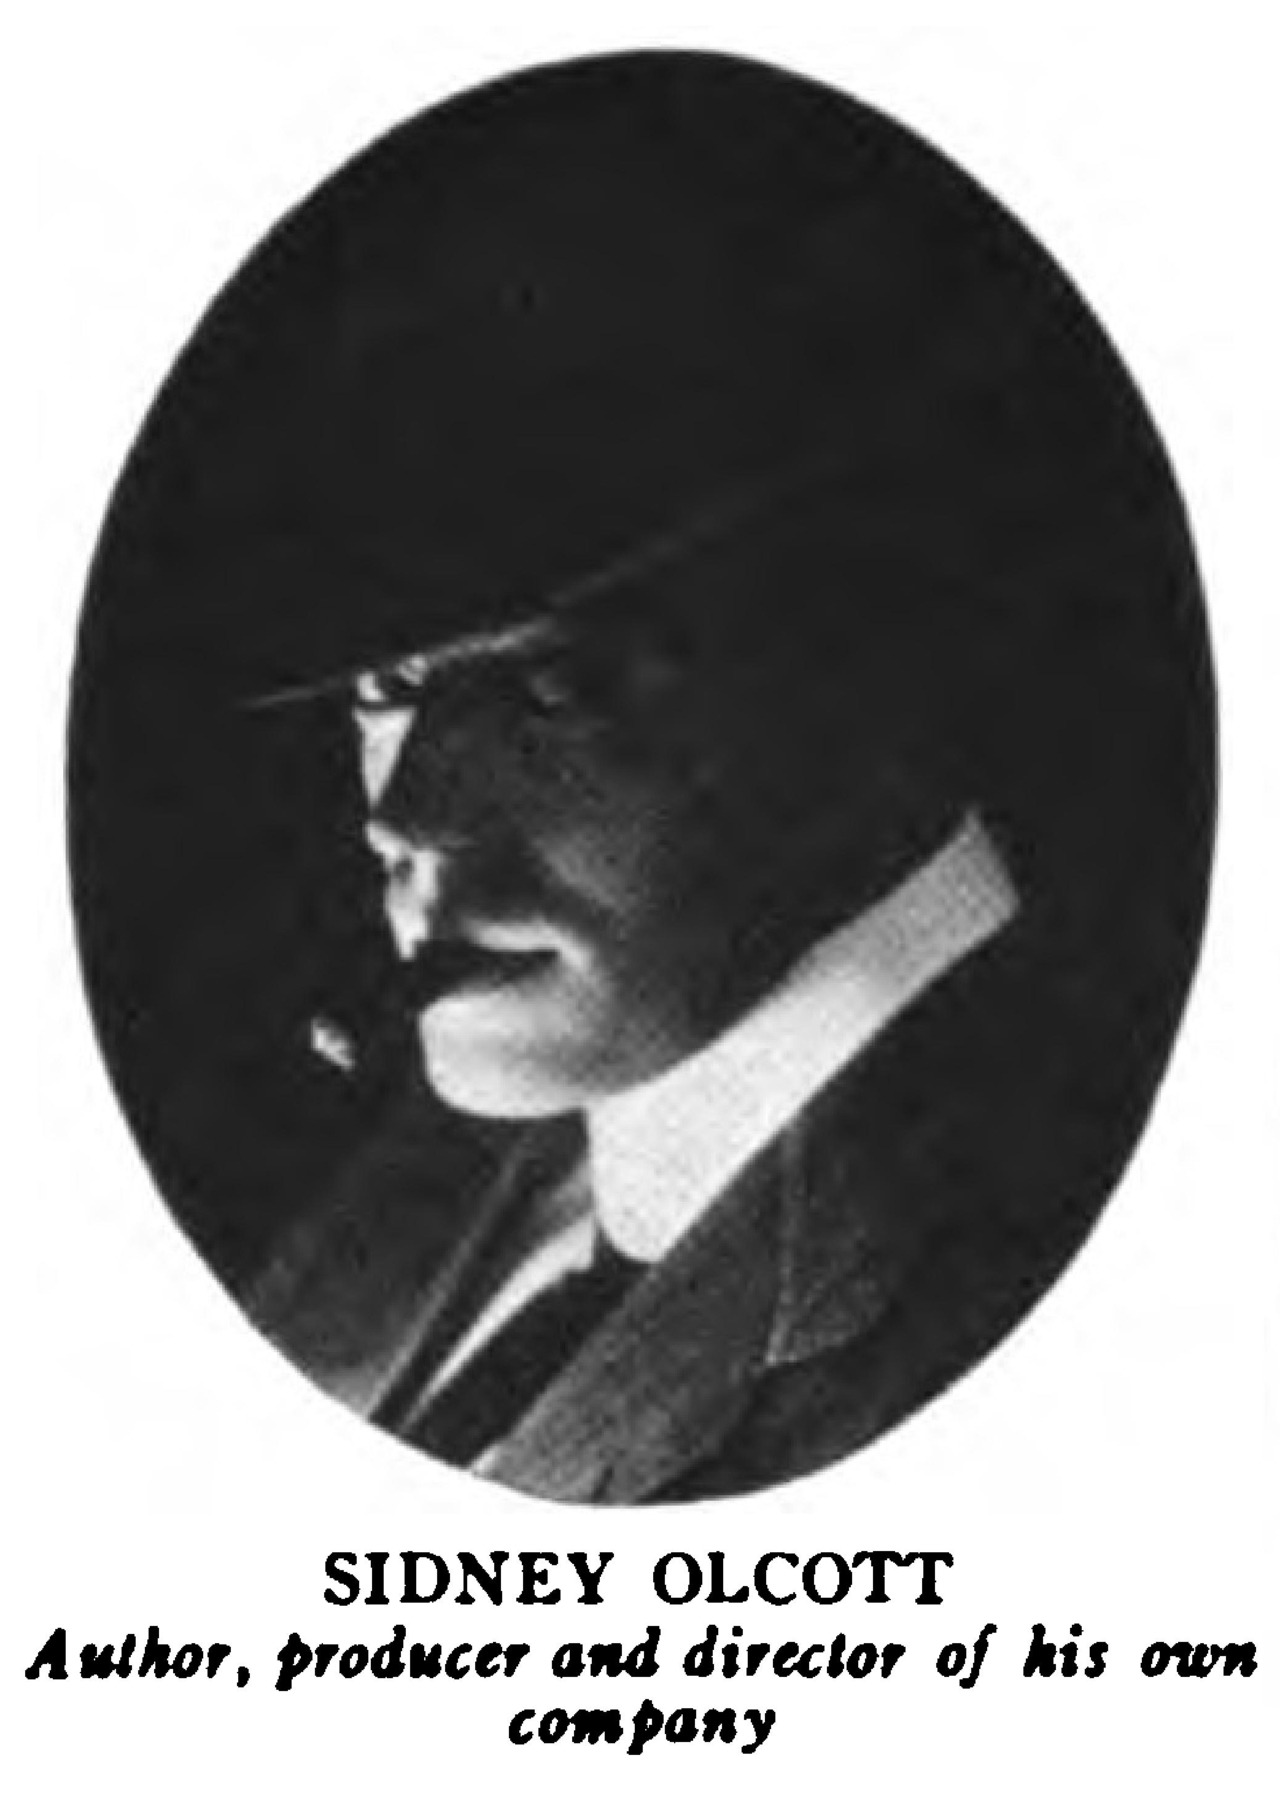 Filmmaker Sidney Olcott, born September 20, 1873.